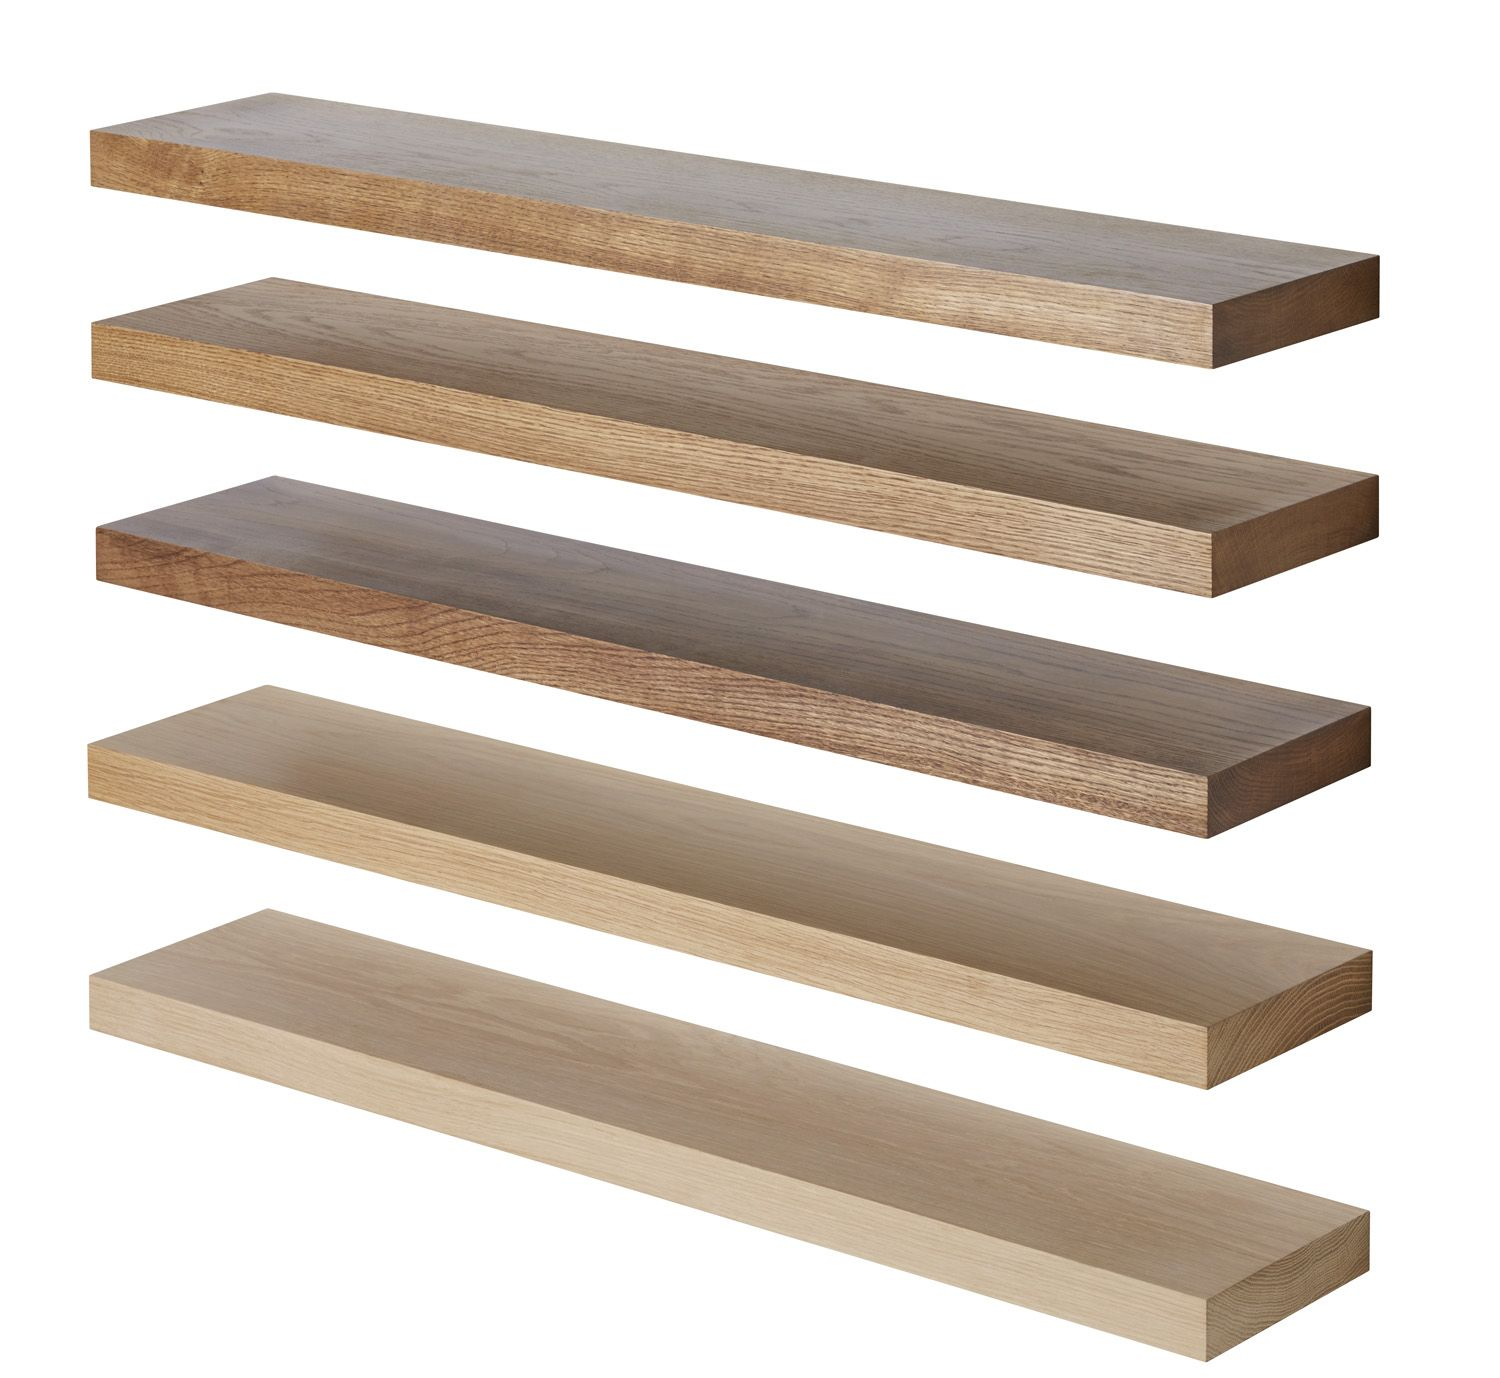 solid oak floating shelf custom made measure customise length apx deep shelves compact bathroom storage walnut contemporary white set threshold ture ledge clips and supports wall